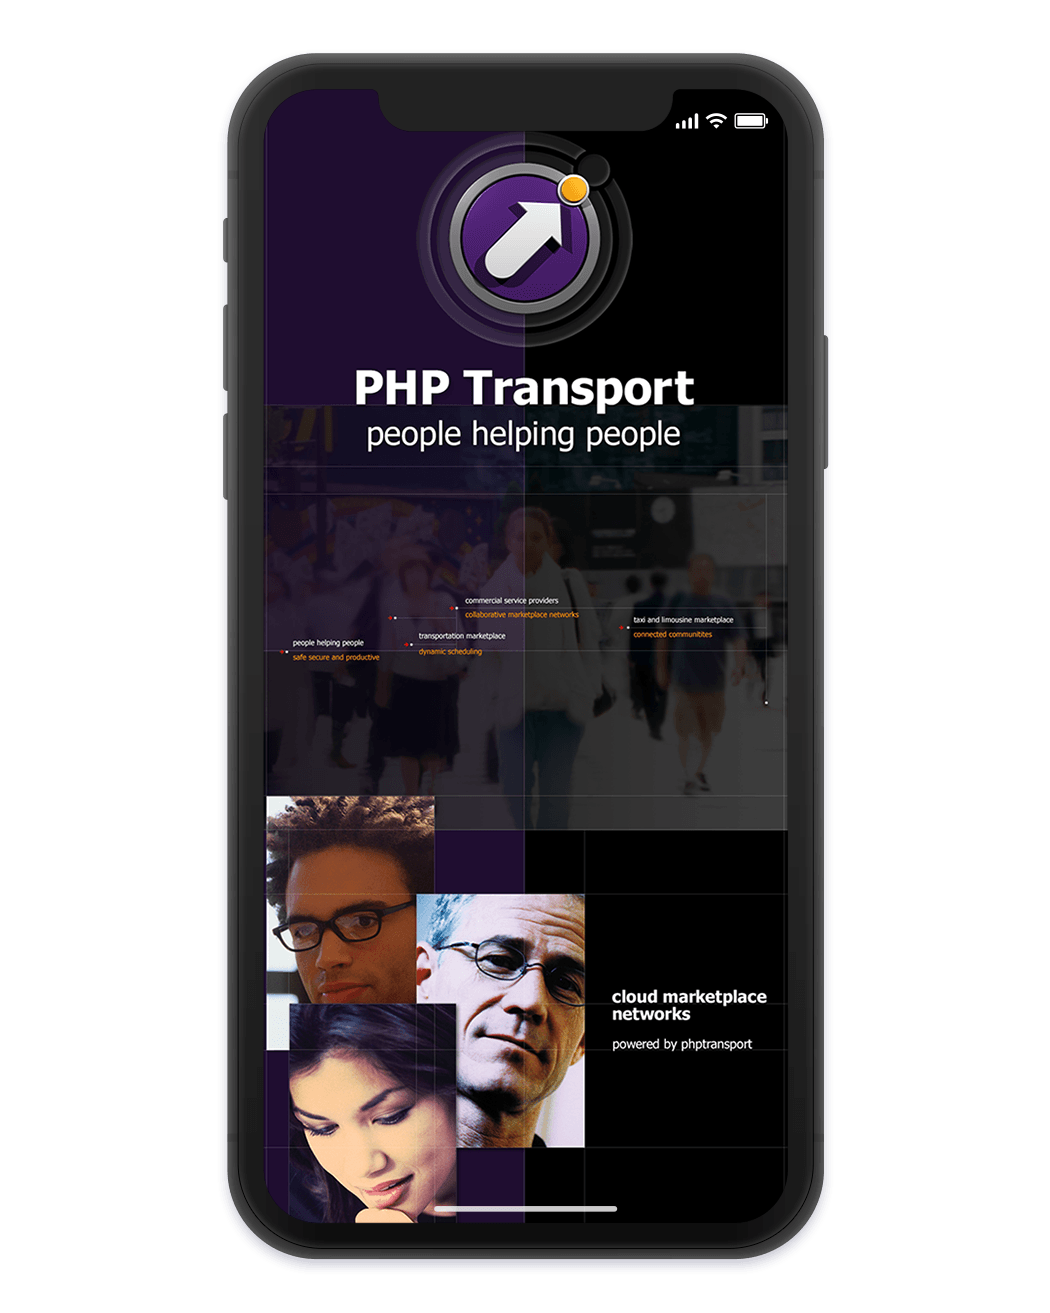 phptransport_iPhone_php